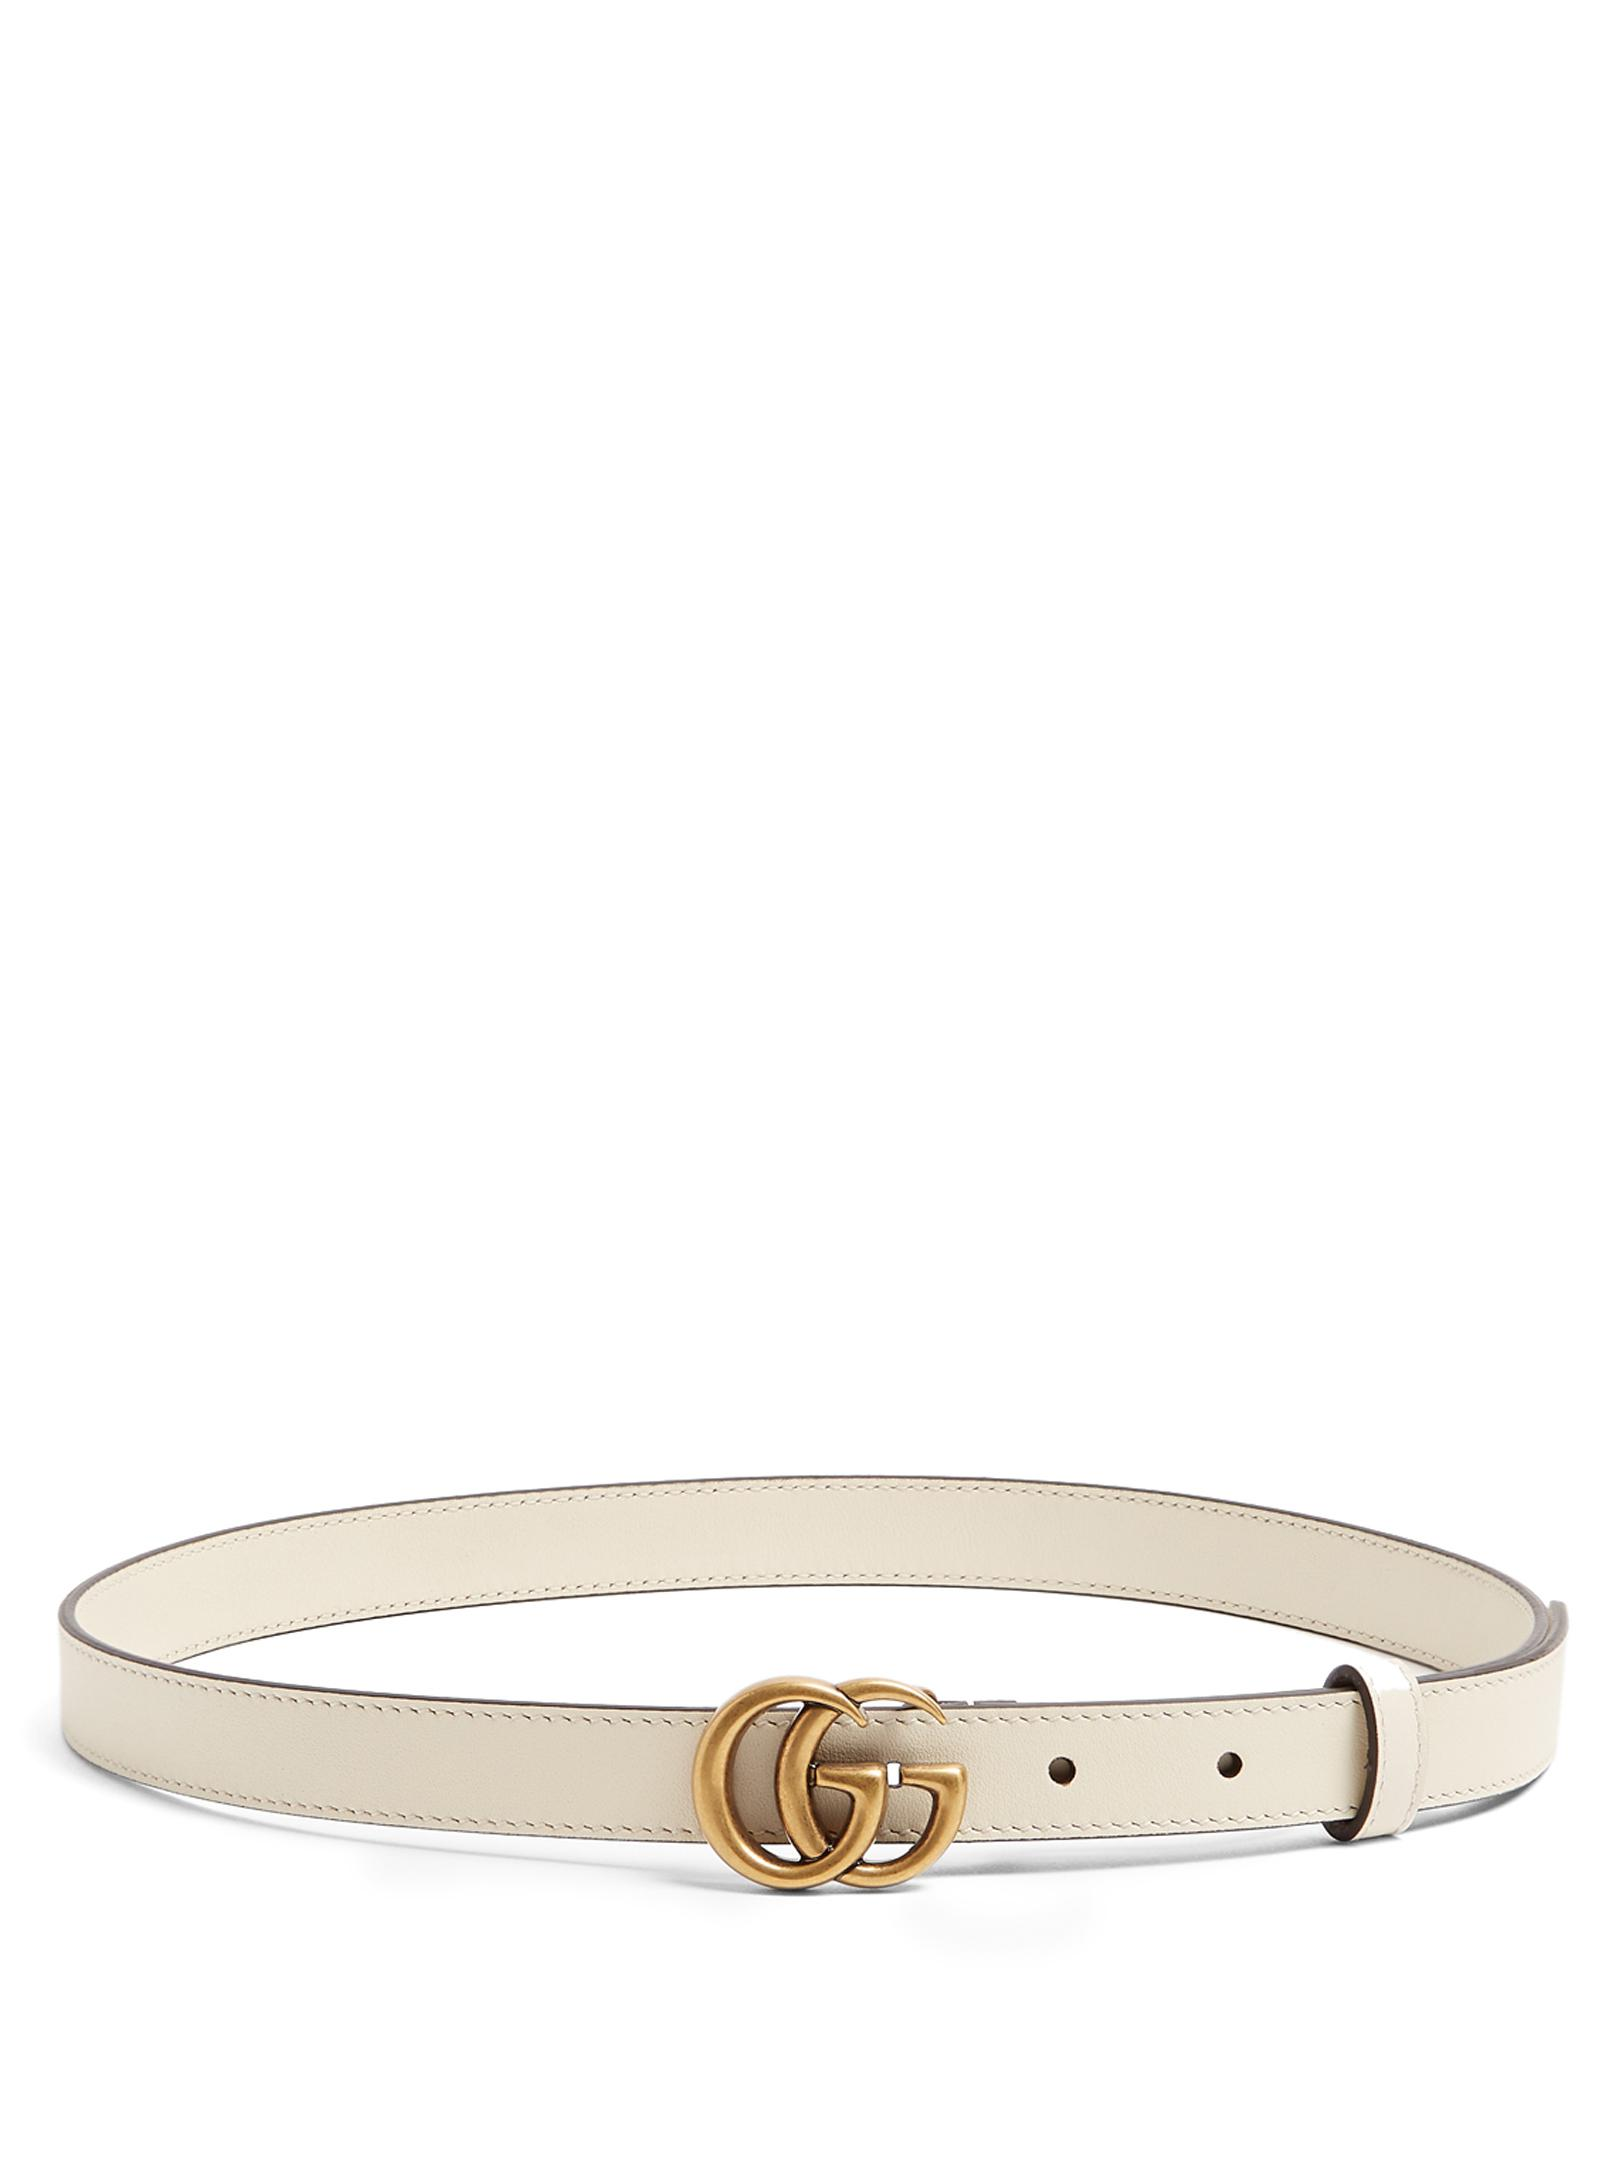 100d0f51129 Lyst - Gucci Gg-logo 2cm Leather Belt in Natural